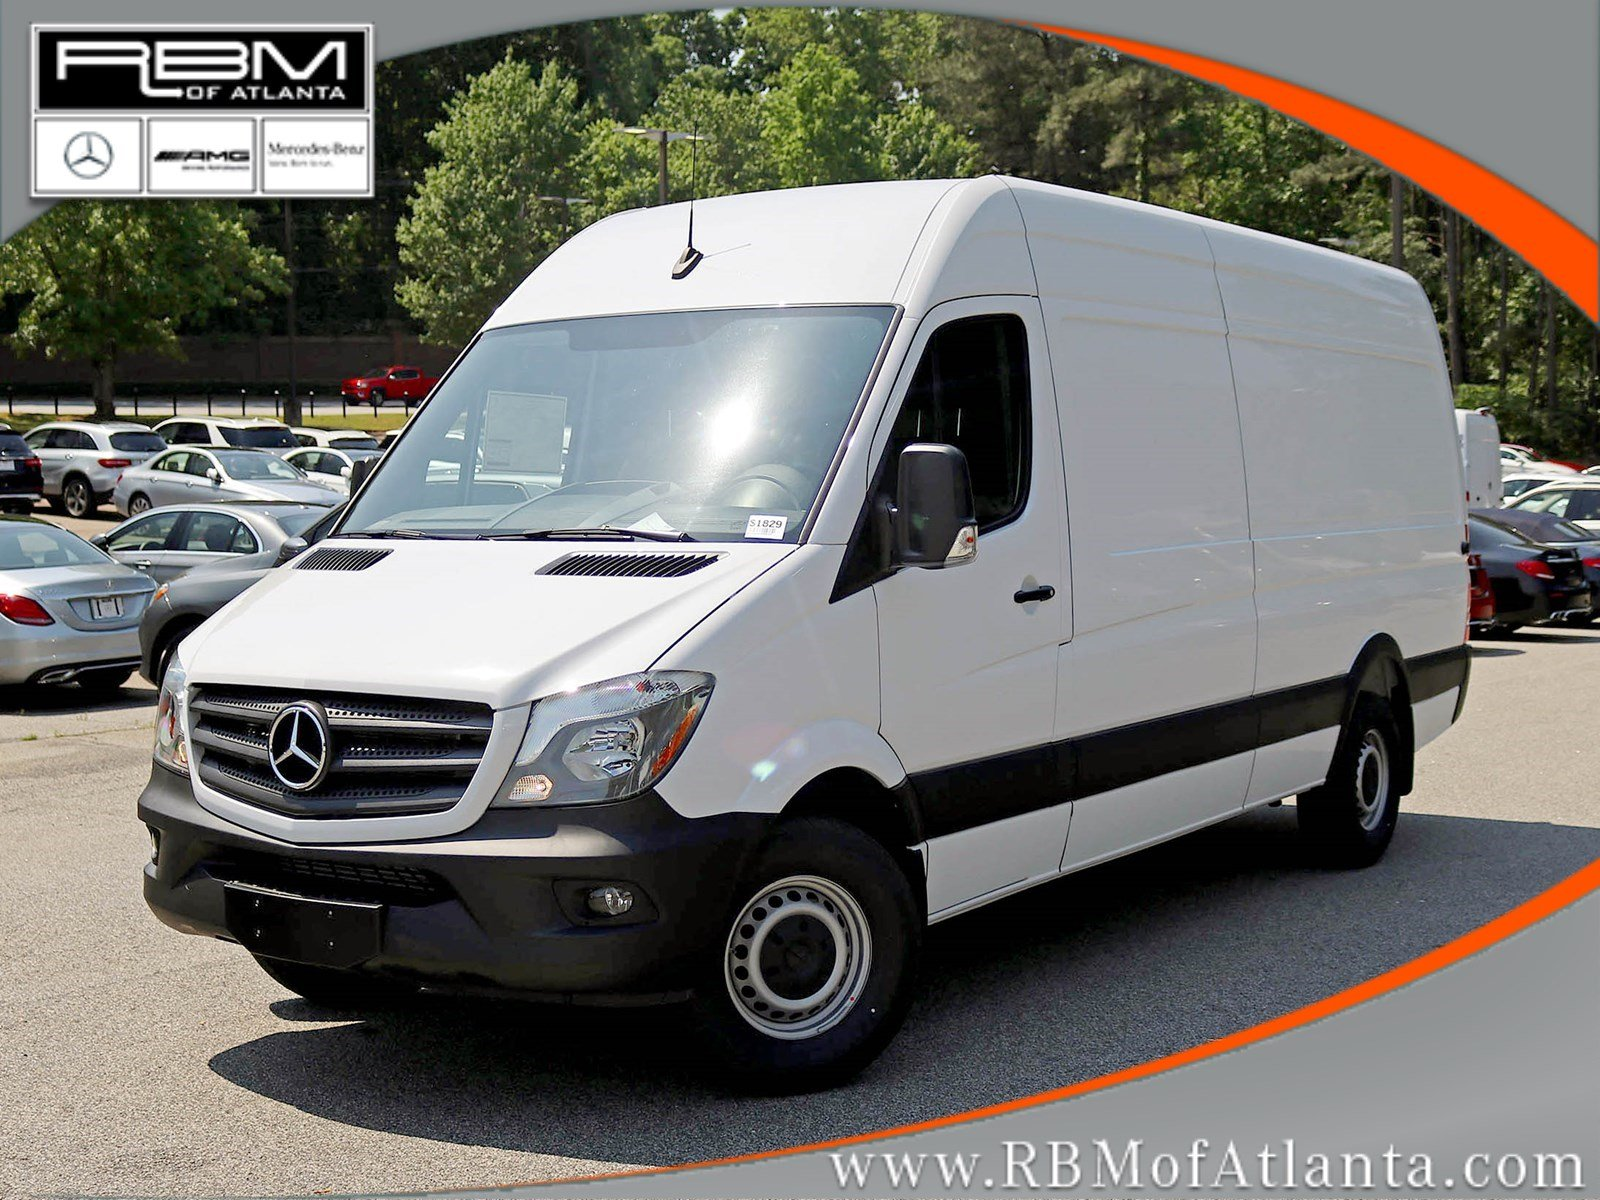 hours medium in teases electric body mercedes cargo futuristic info future two will truck intelligent ago interconnected transport duty of van ram and work styles benz with vans the be readies available